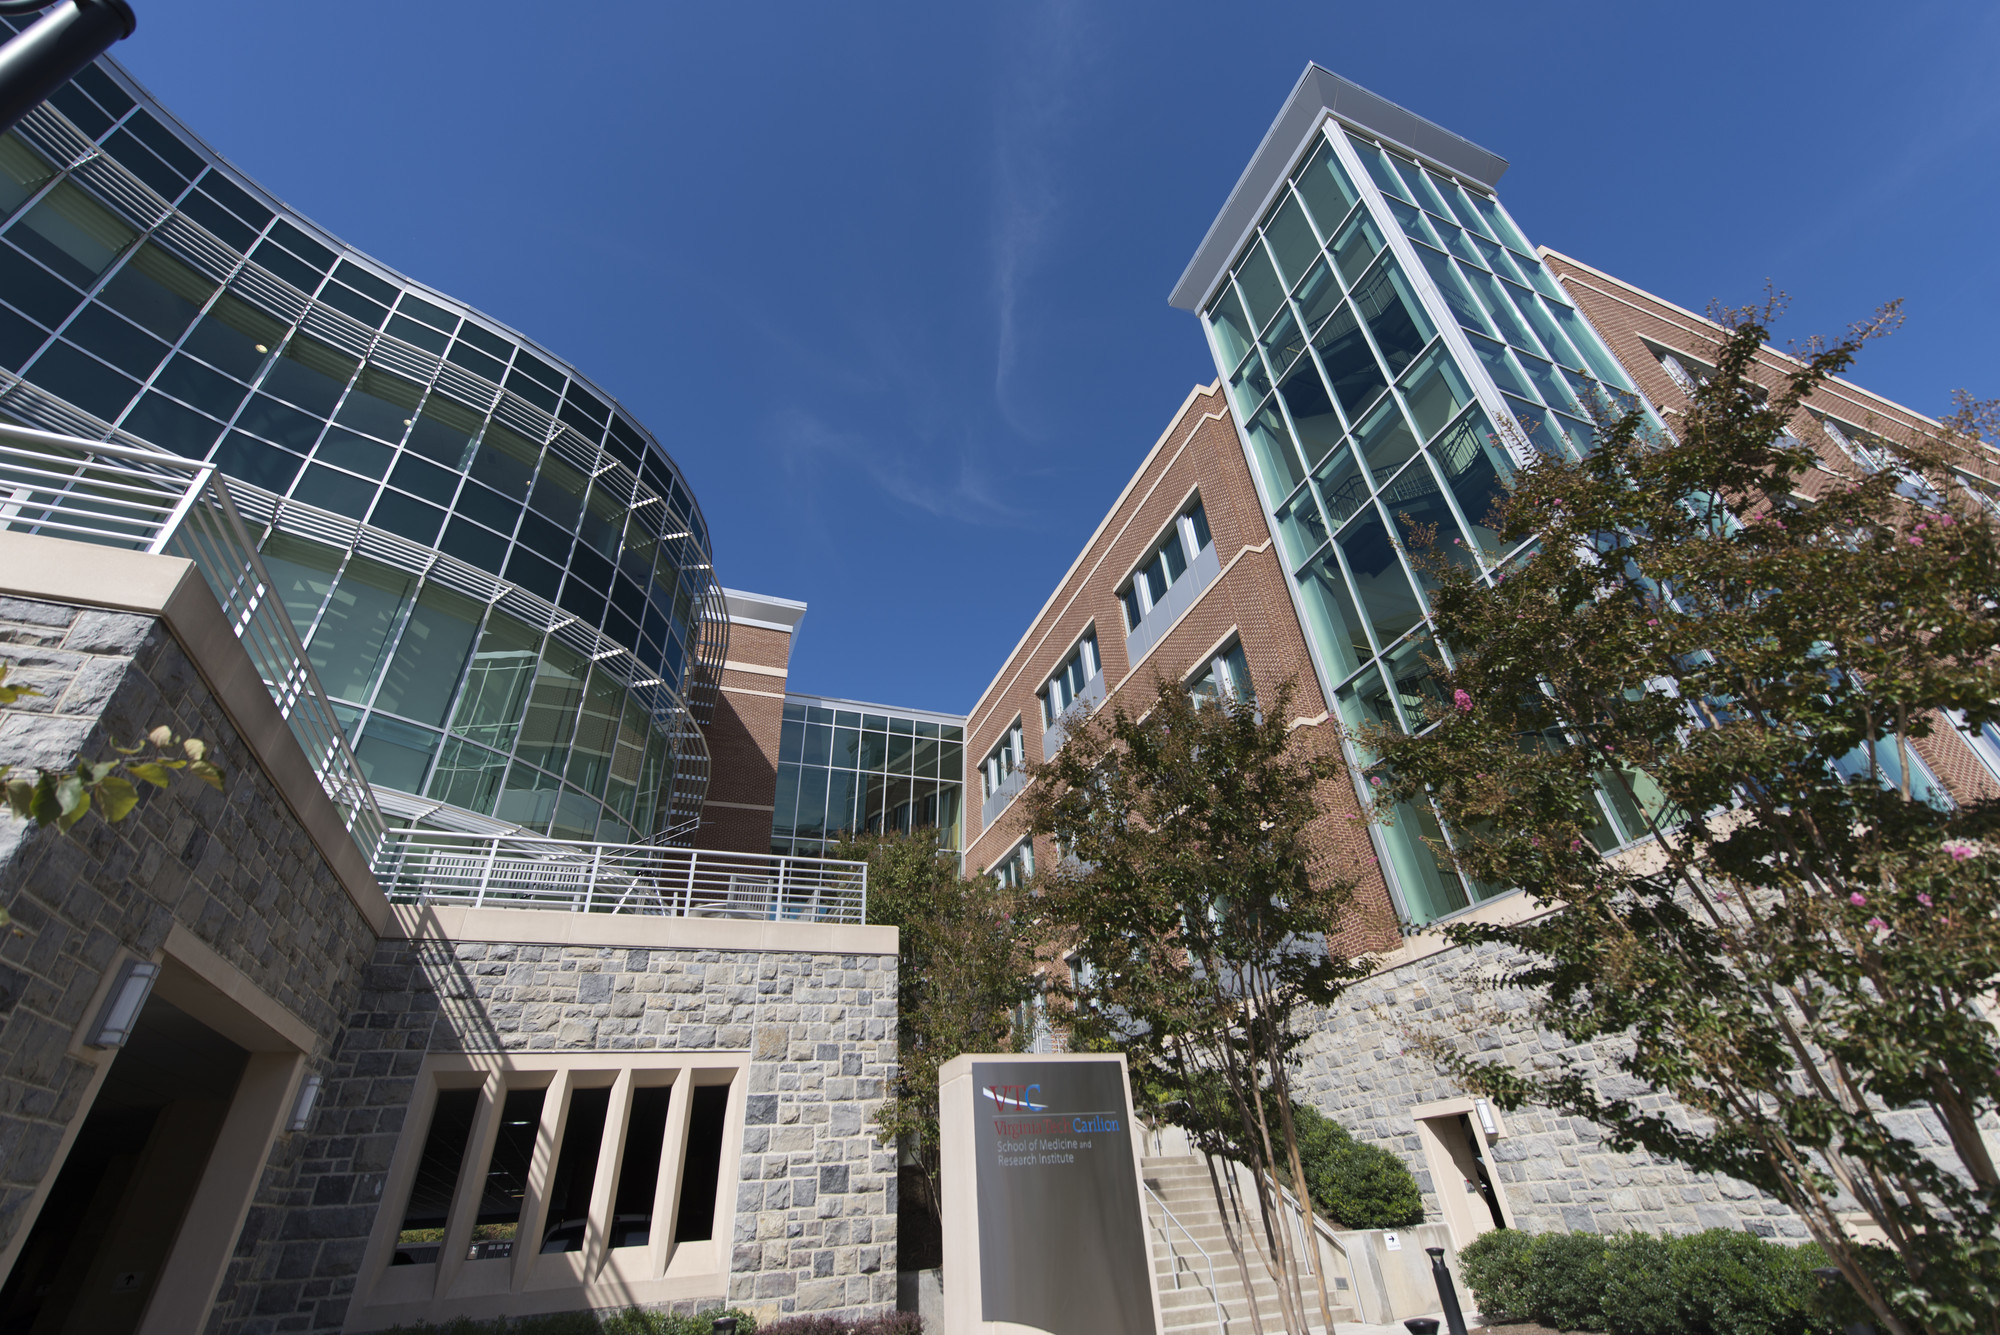 Front of the Virginia Tech Carilion School of medicine and Research Institute, Roanoke, Va. (David Hungate for VTC)